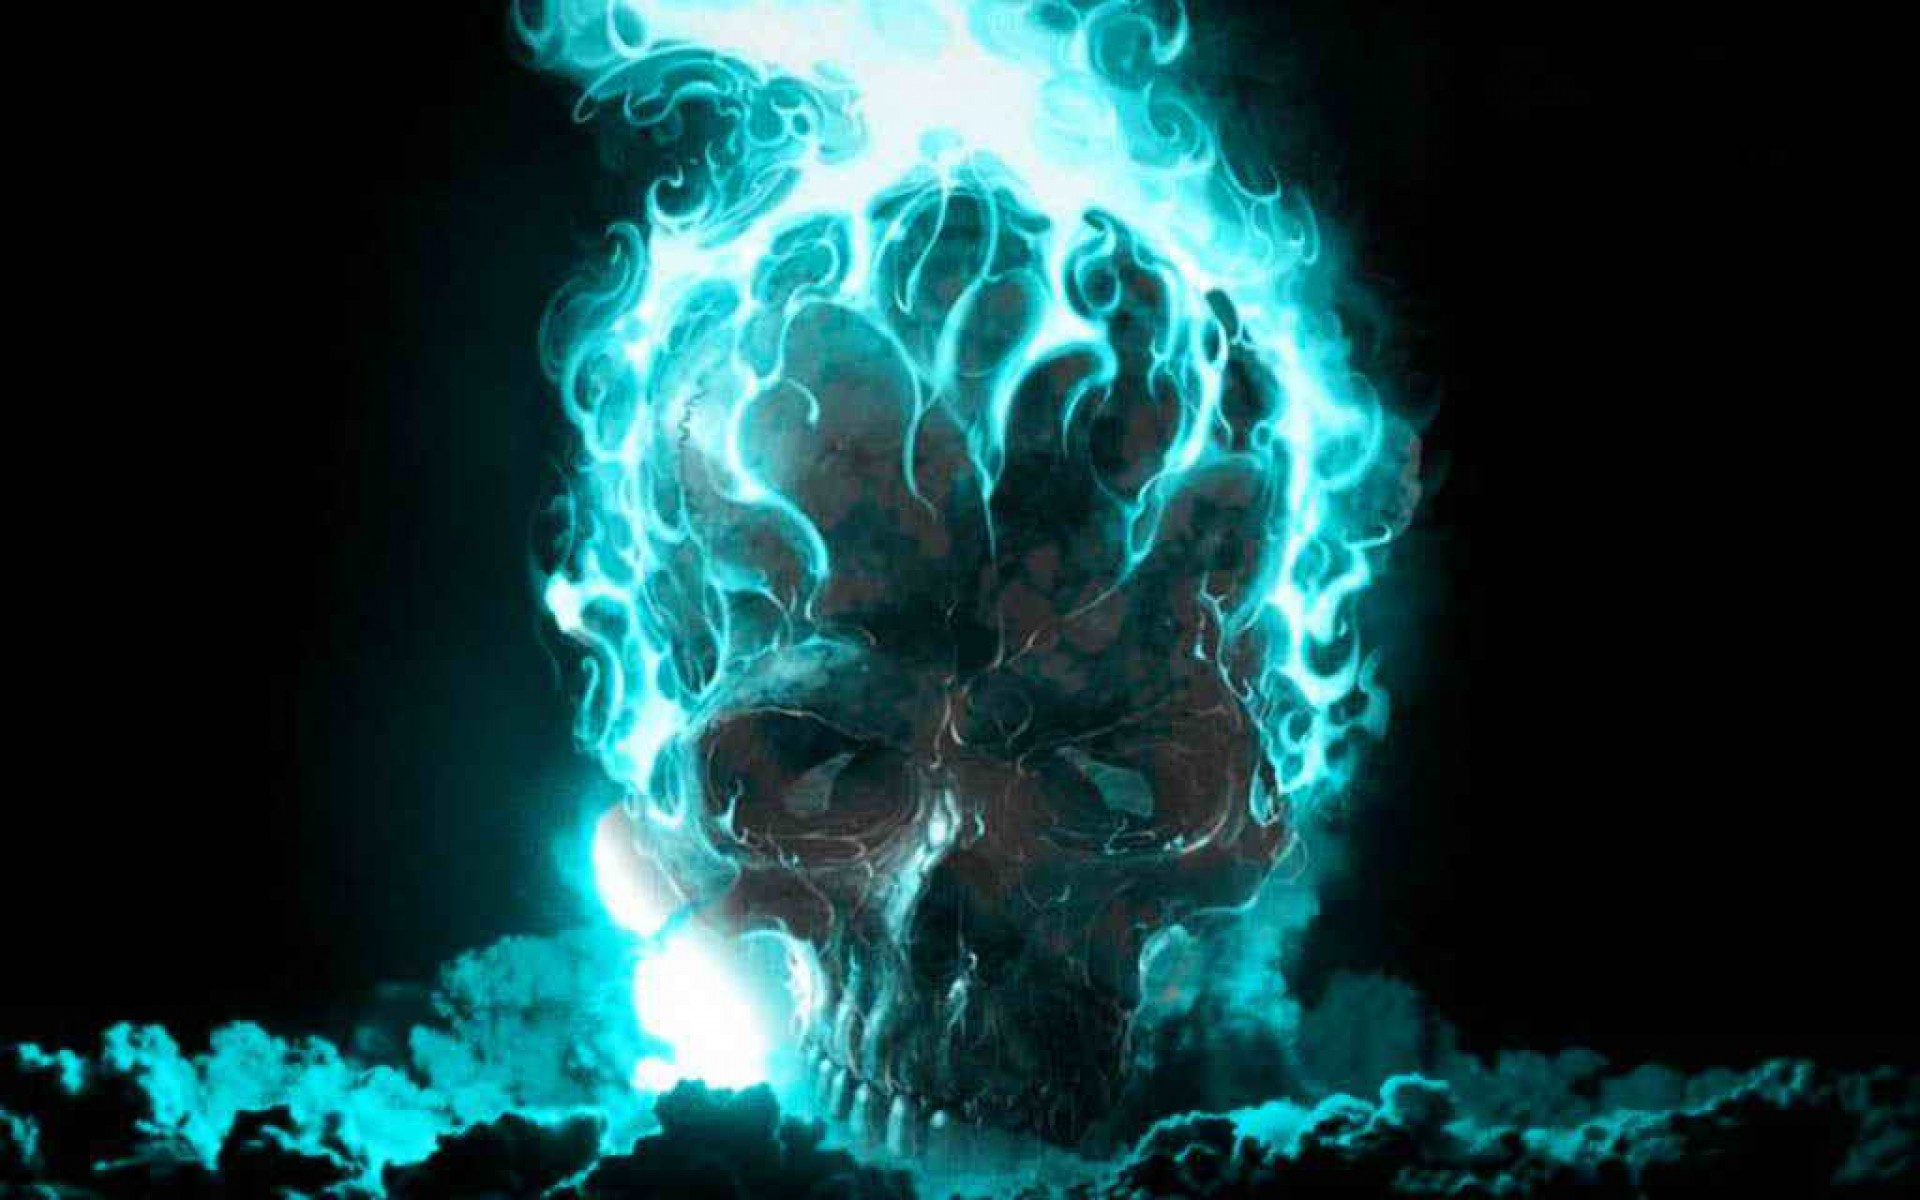 1920x1200 Mythical Evil Skull #Awesome #cool #Evil #Fantasy #Imagination #Mythical #